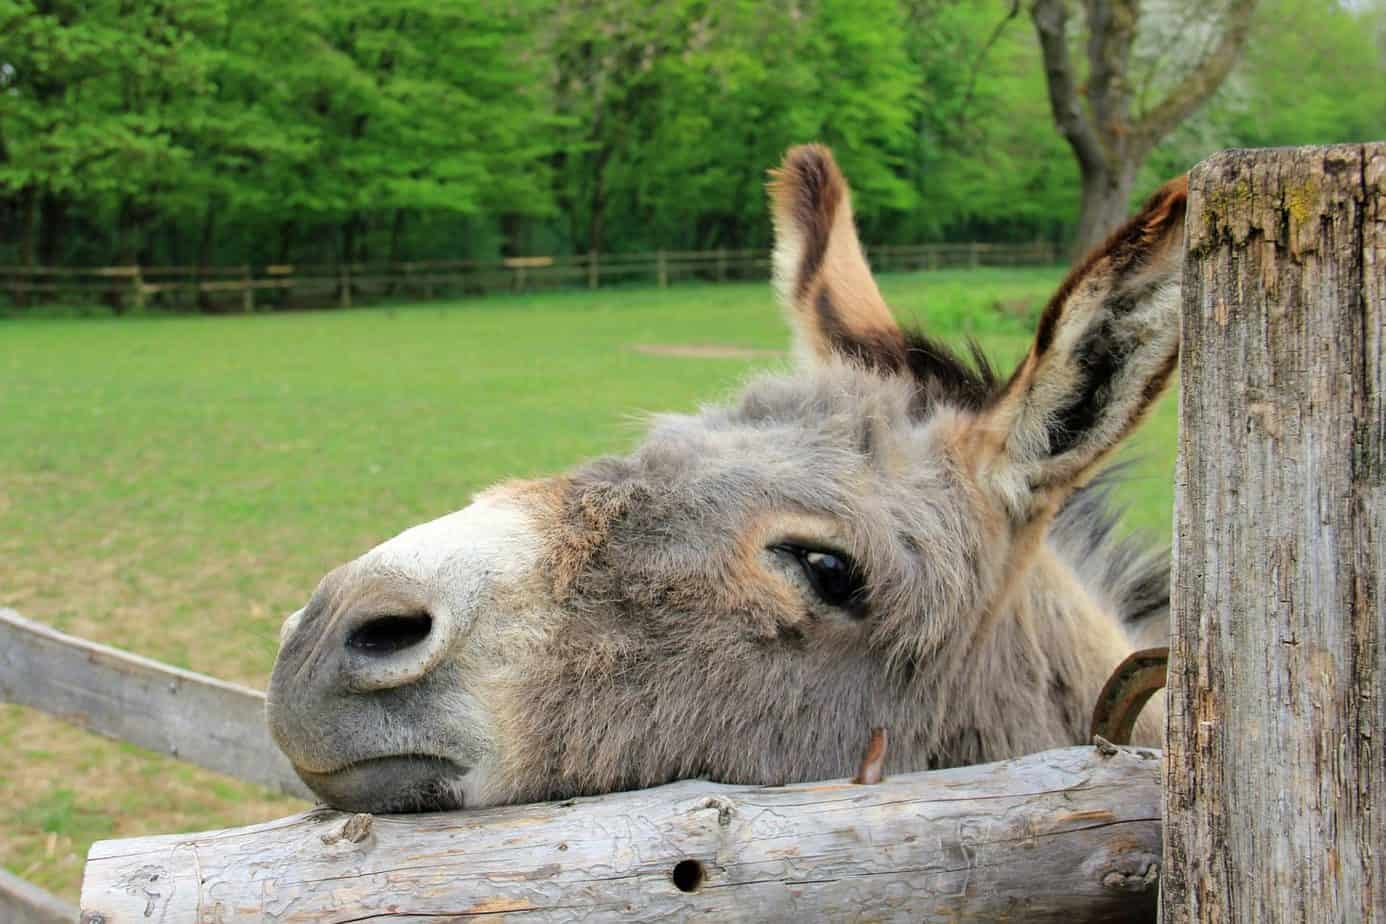 A close up of a donkey at the donkey sanctuary